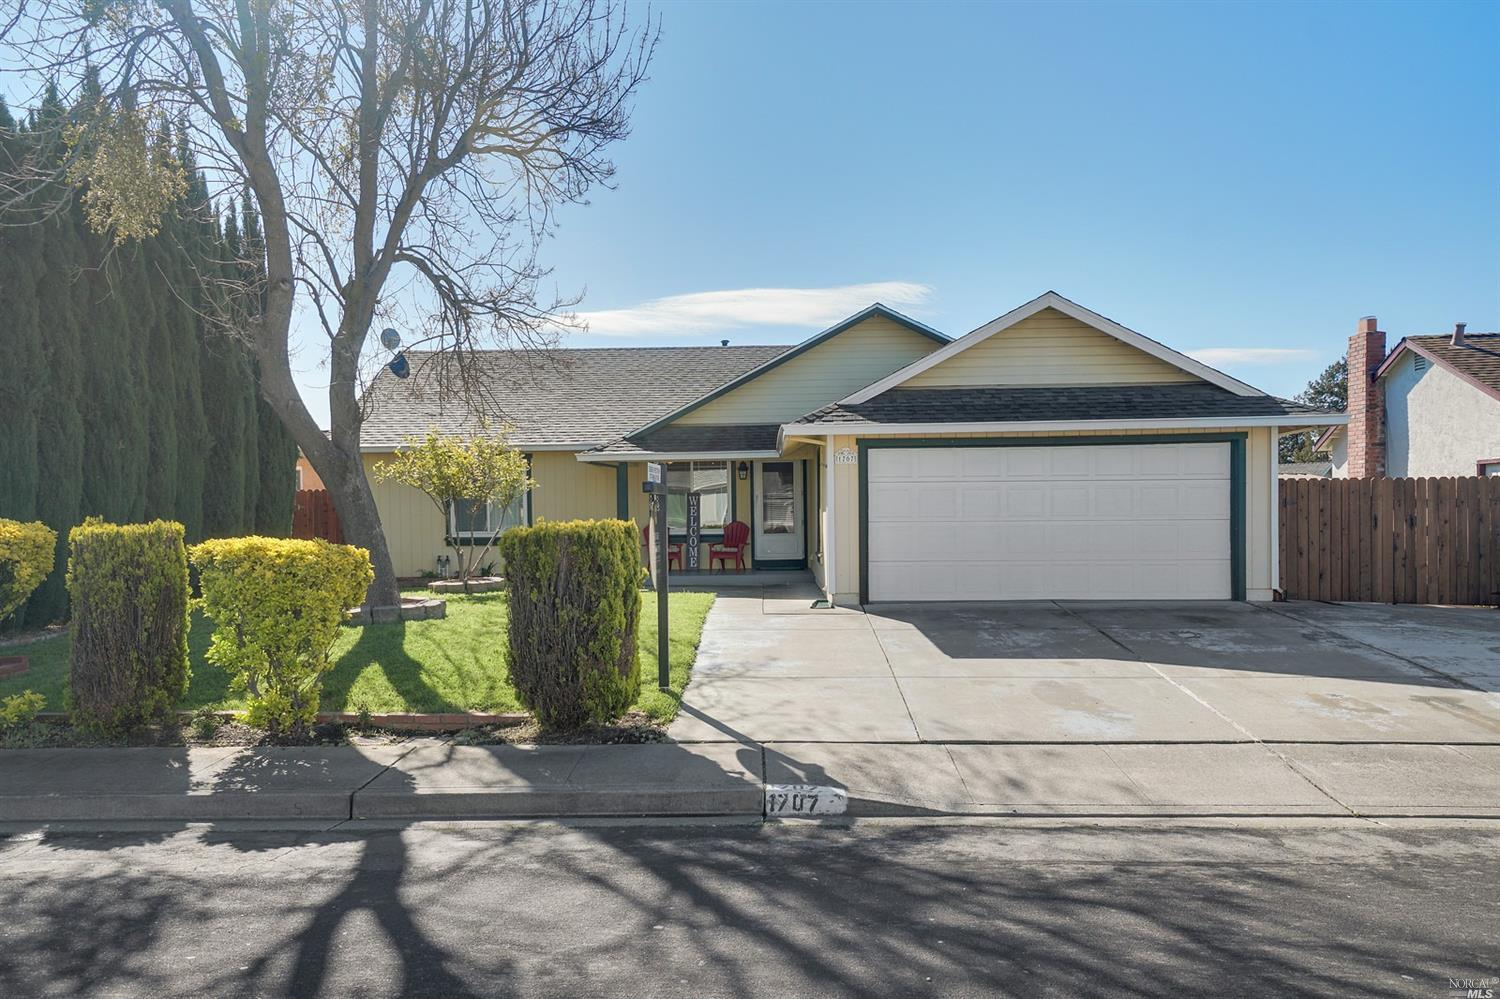 This is the one you've been waiting for! Well maintained 4 bed 2 bath home in Montebello Vista. This